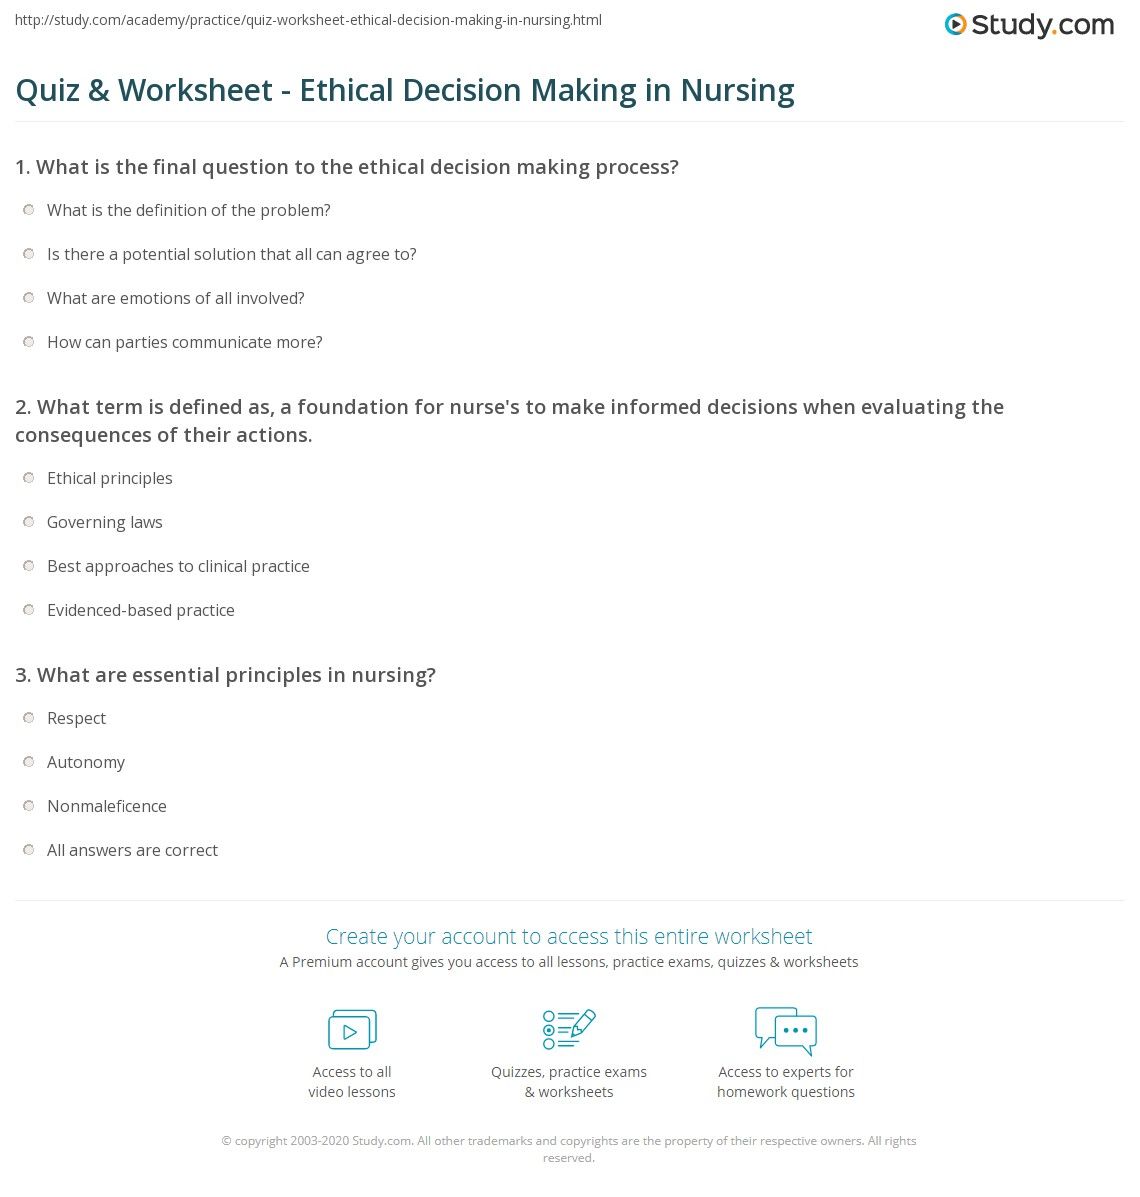 quiz worksheet ethical decision making in nursing. Black Bedroom Furniture Sets. Home Design Ideas